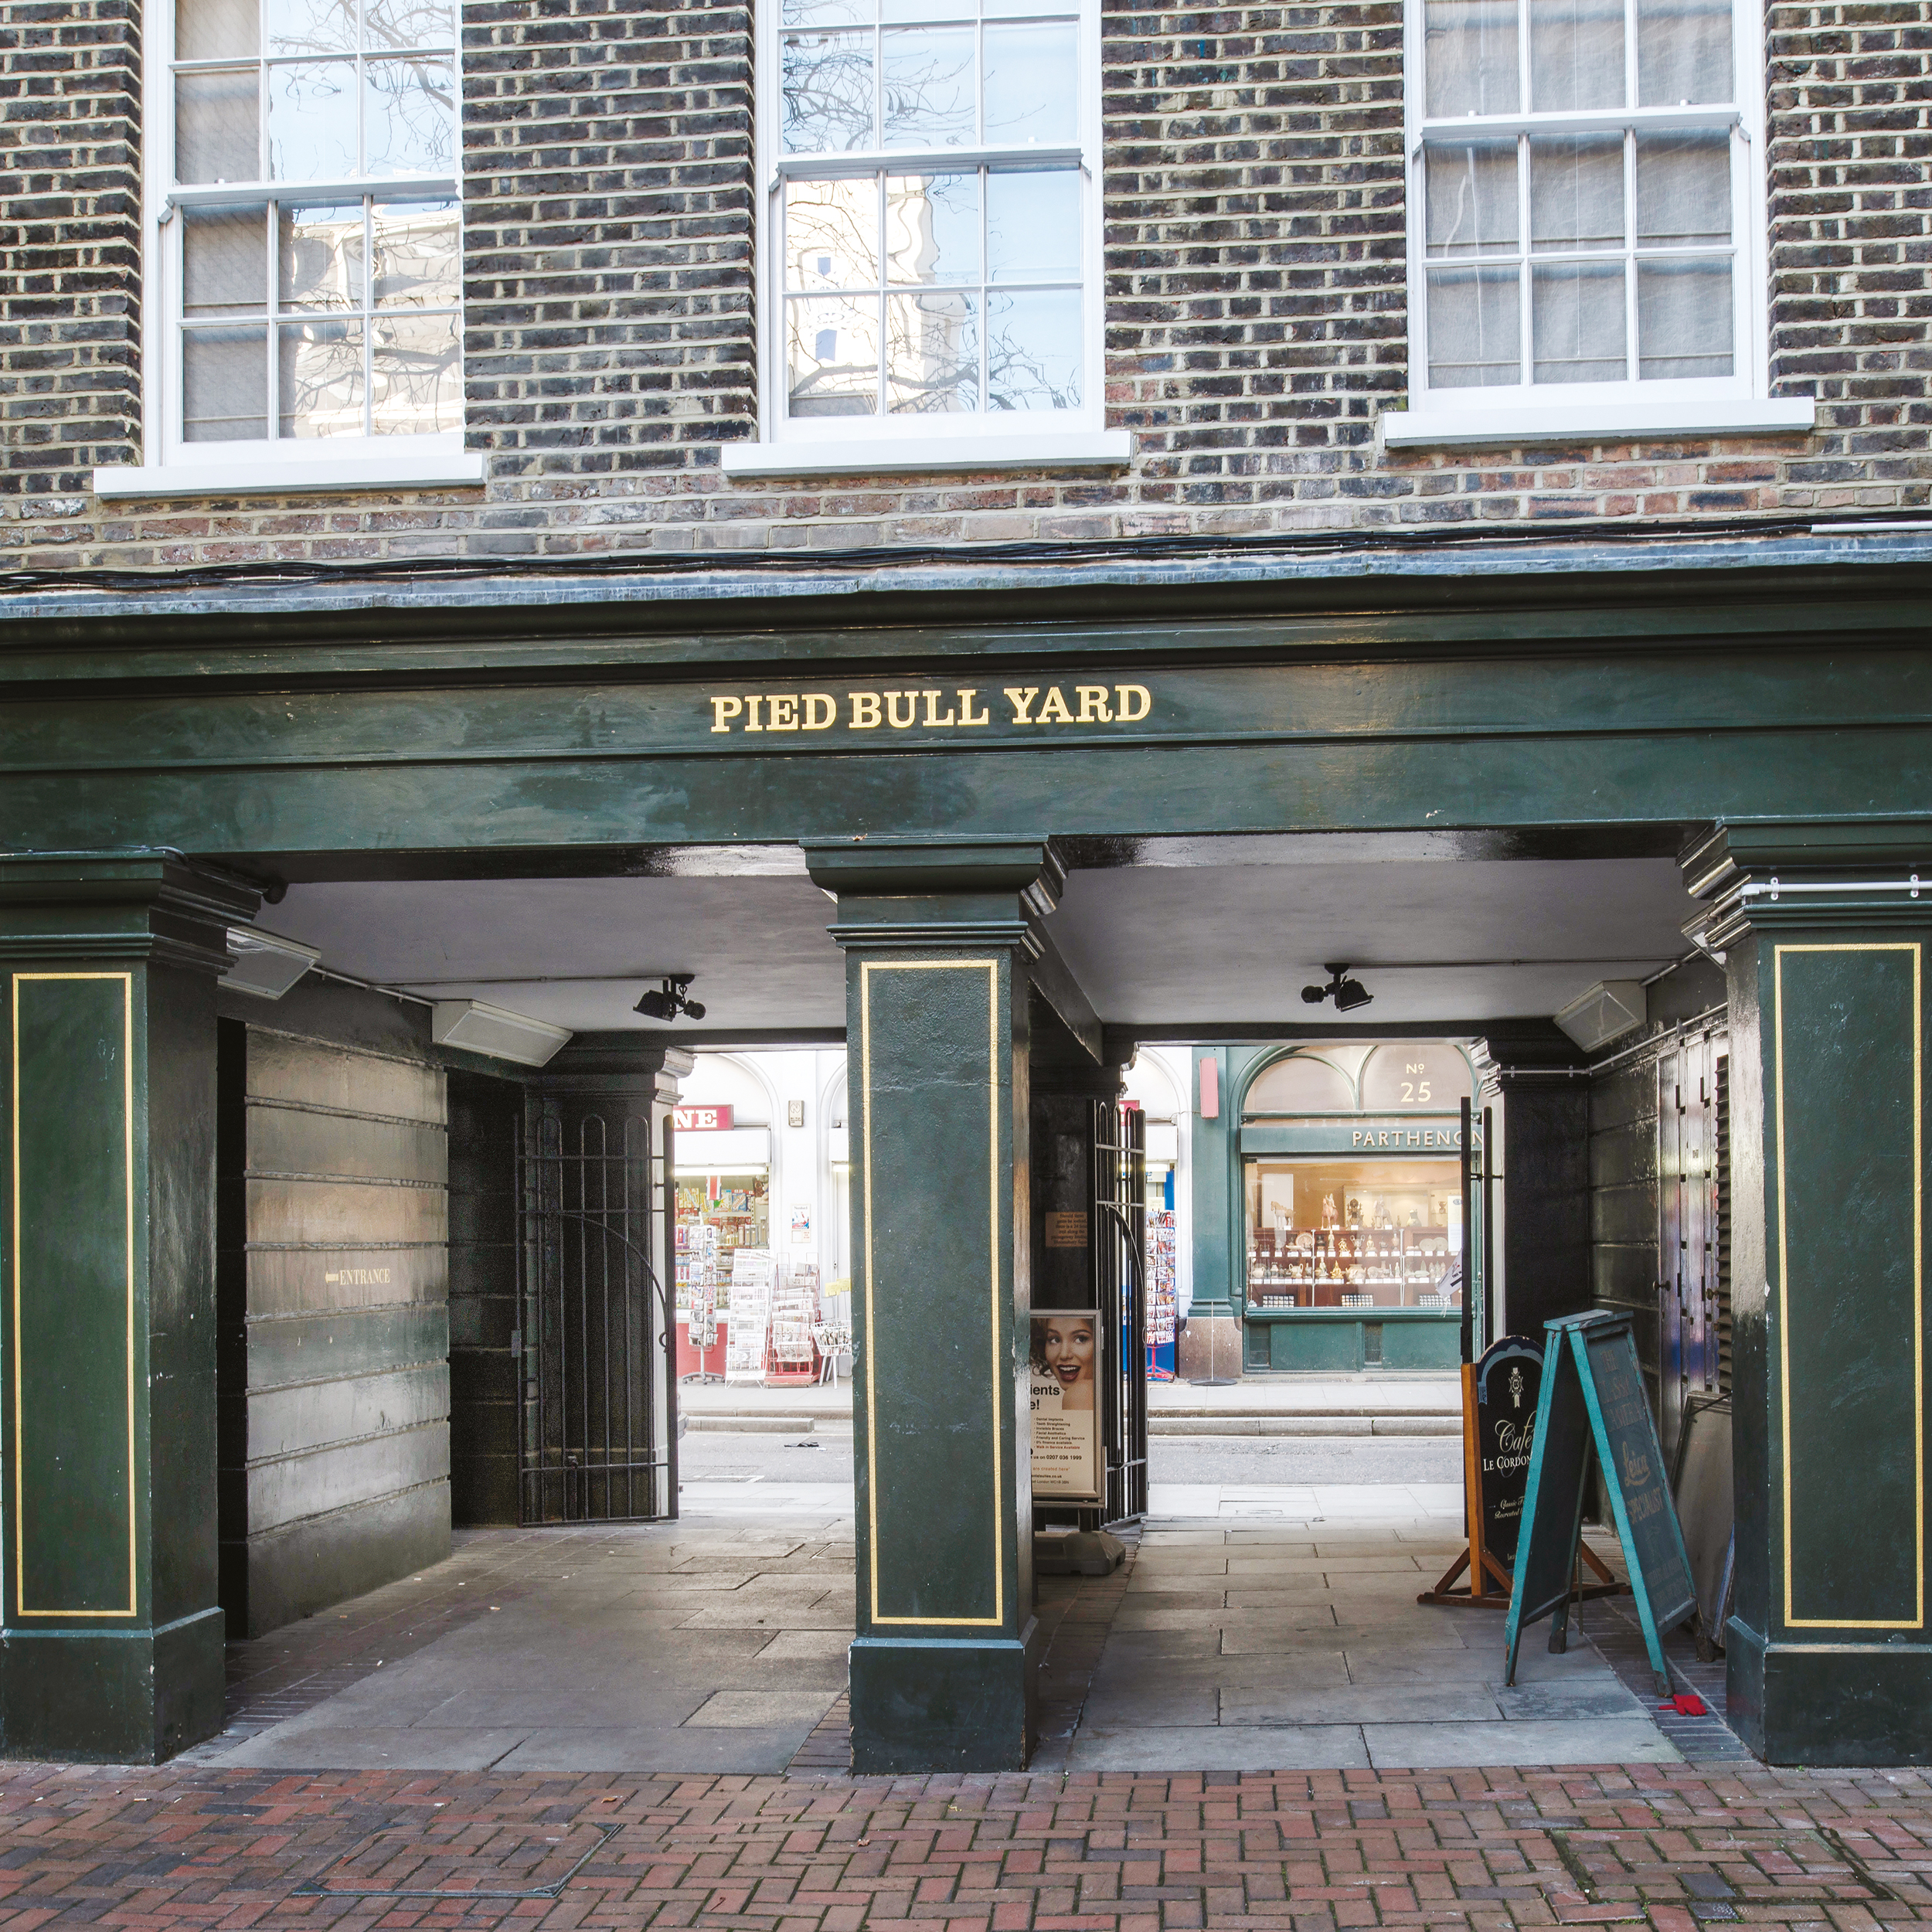 Pied Bull yard external redecorations shows painting and decorating work